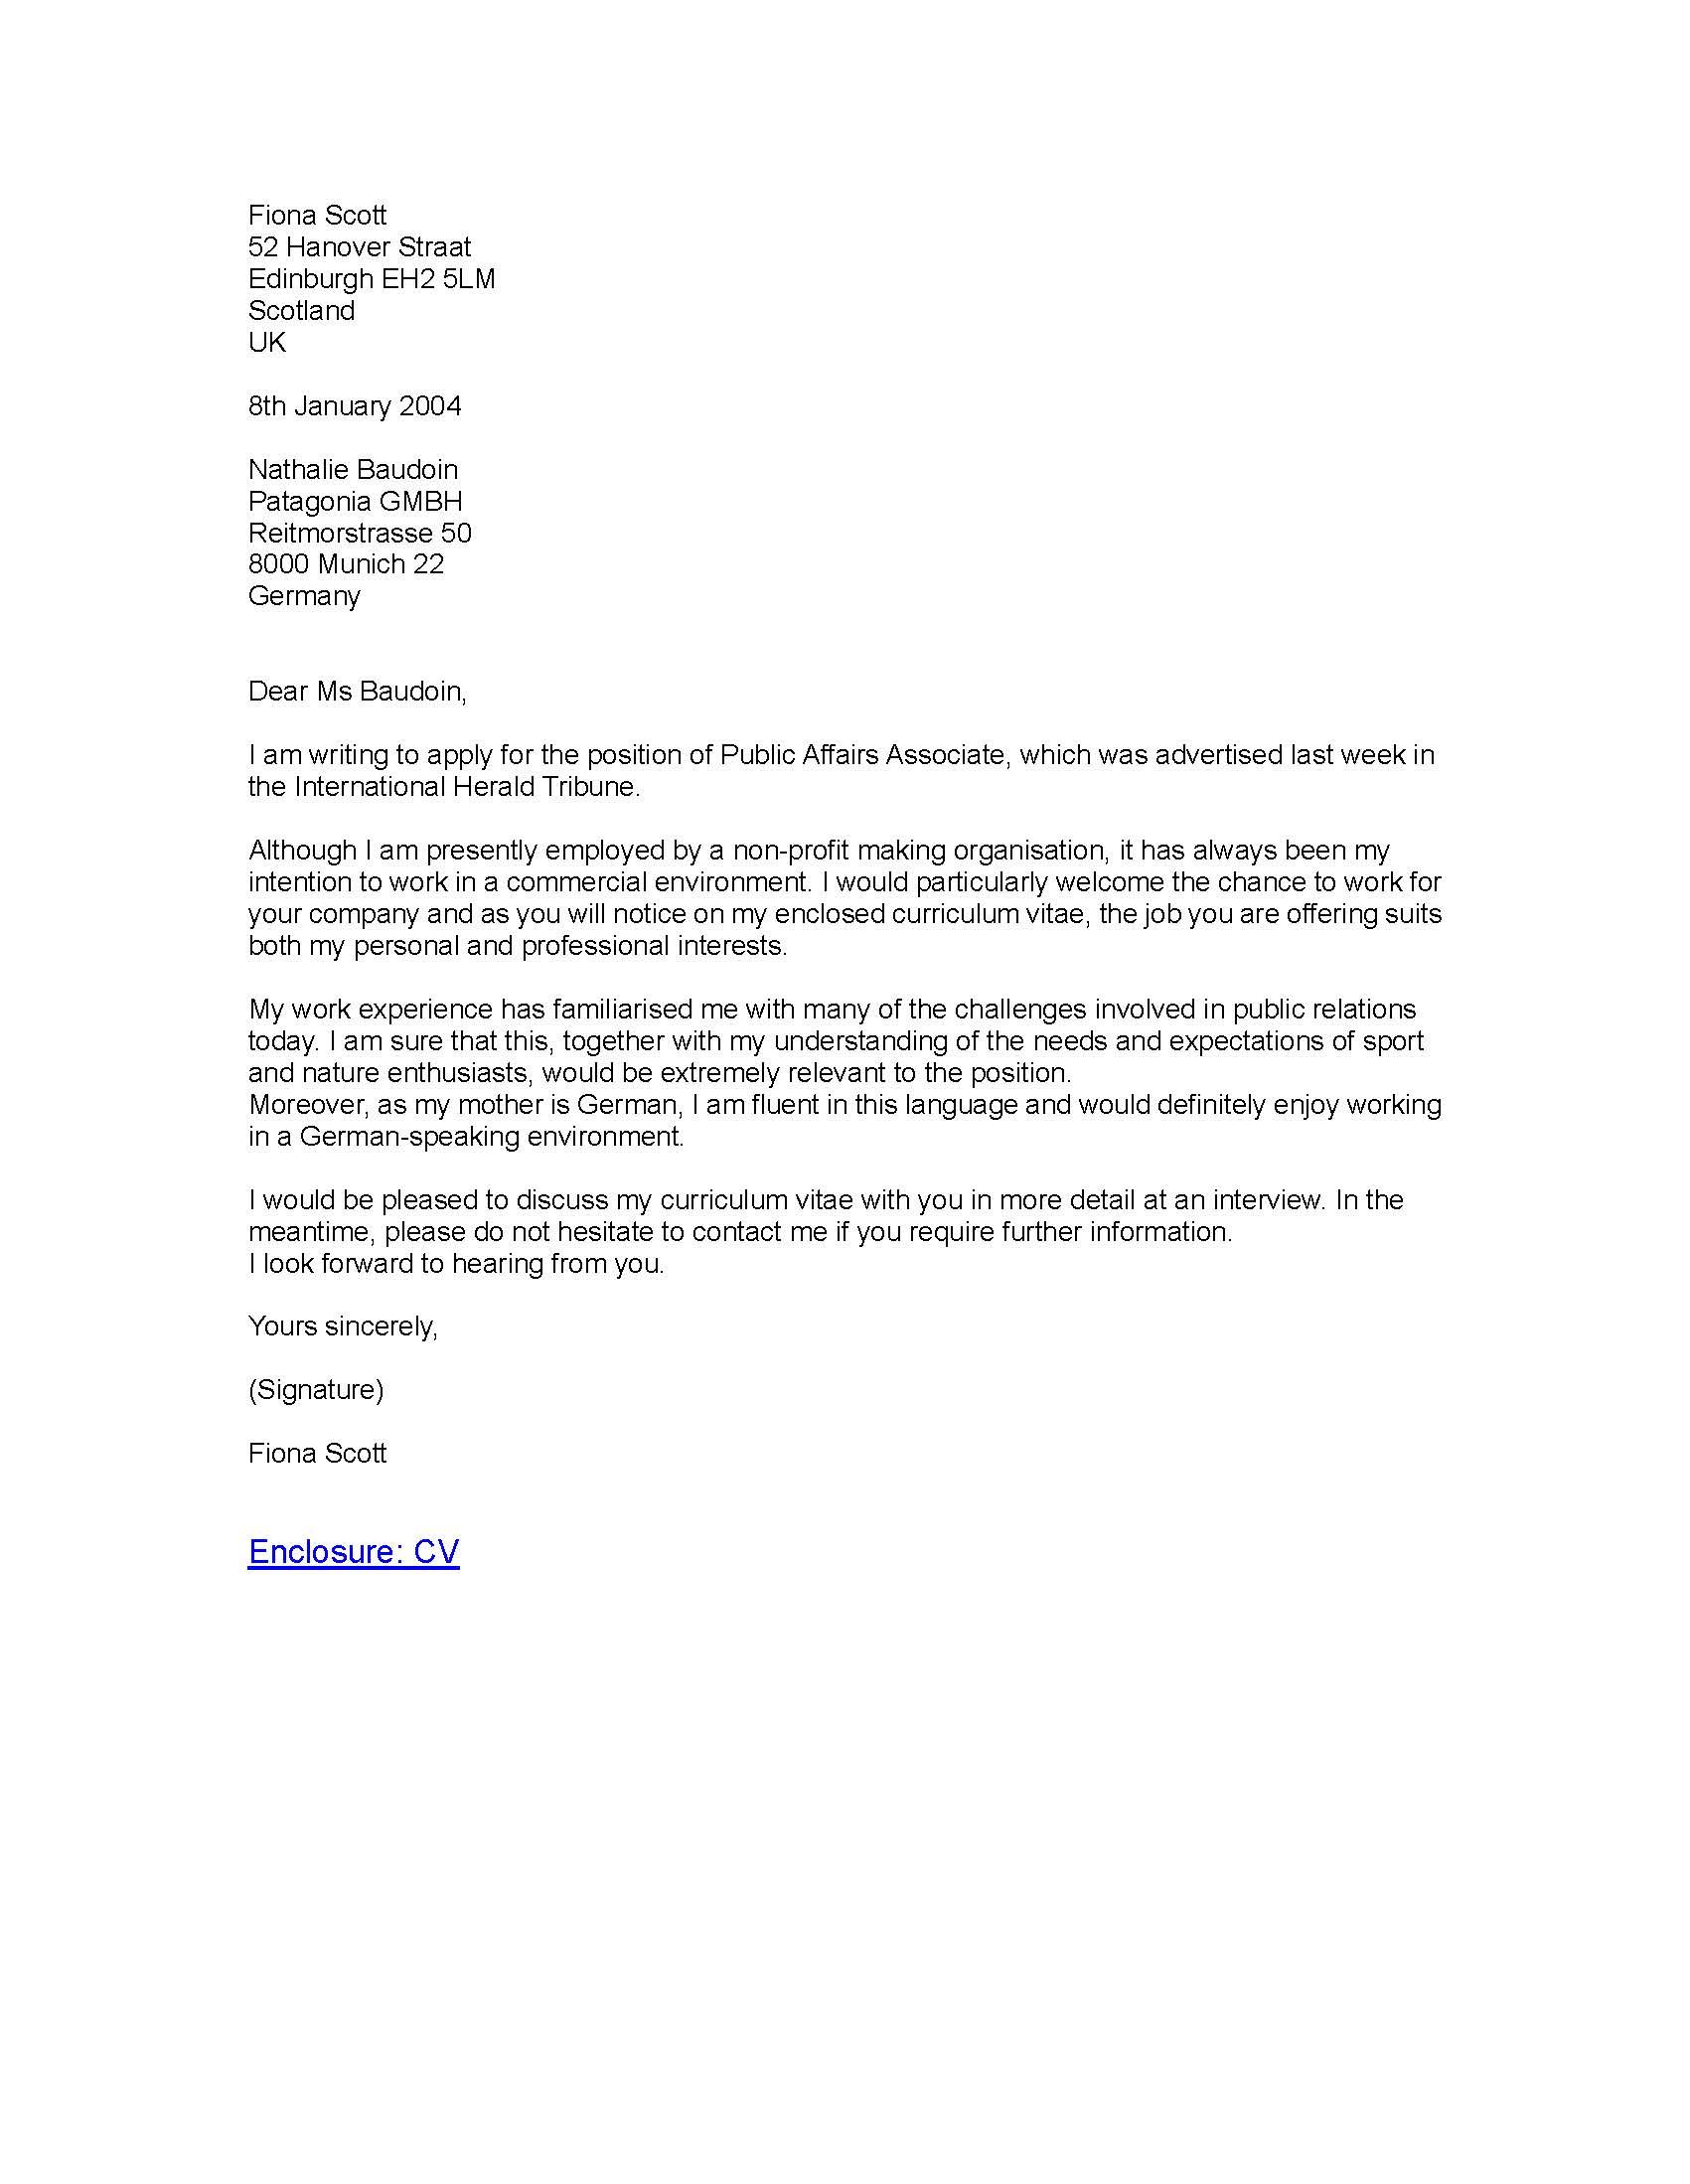 Formal Business Letter Applying For A Job | Interesting stuff ...